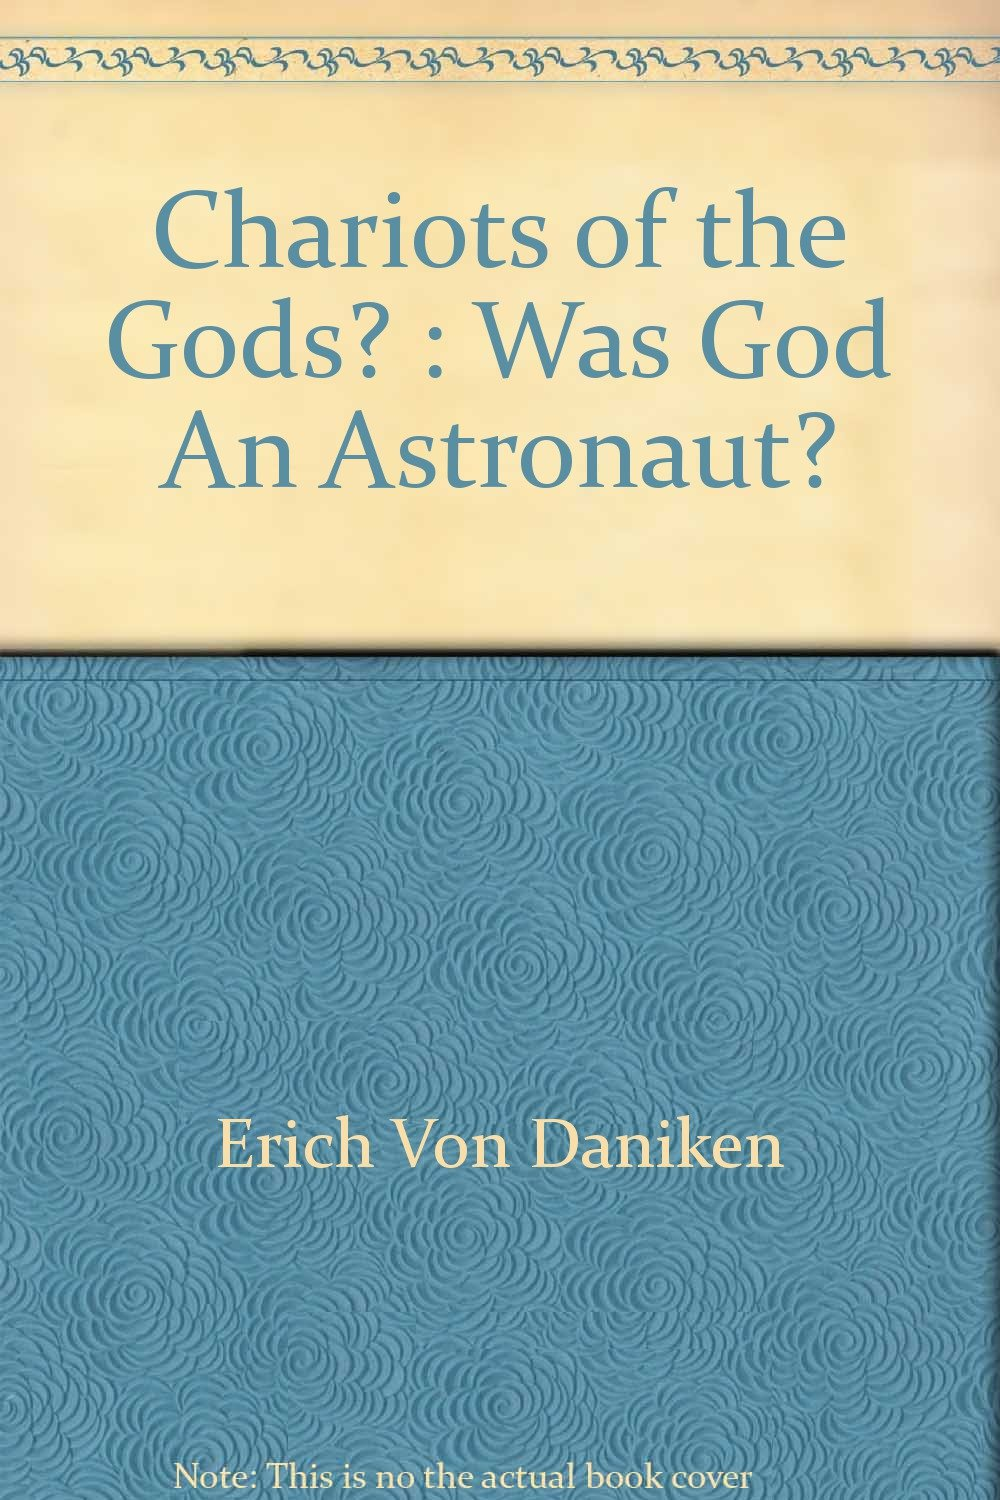 Chariots of the Gods? : Was God An Astronaut?: Amazon.co.uk: Erich Von  Daniken, Michael Heron: 9780425037942: Books